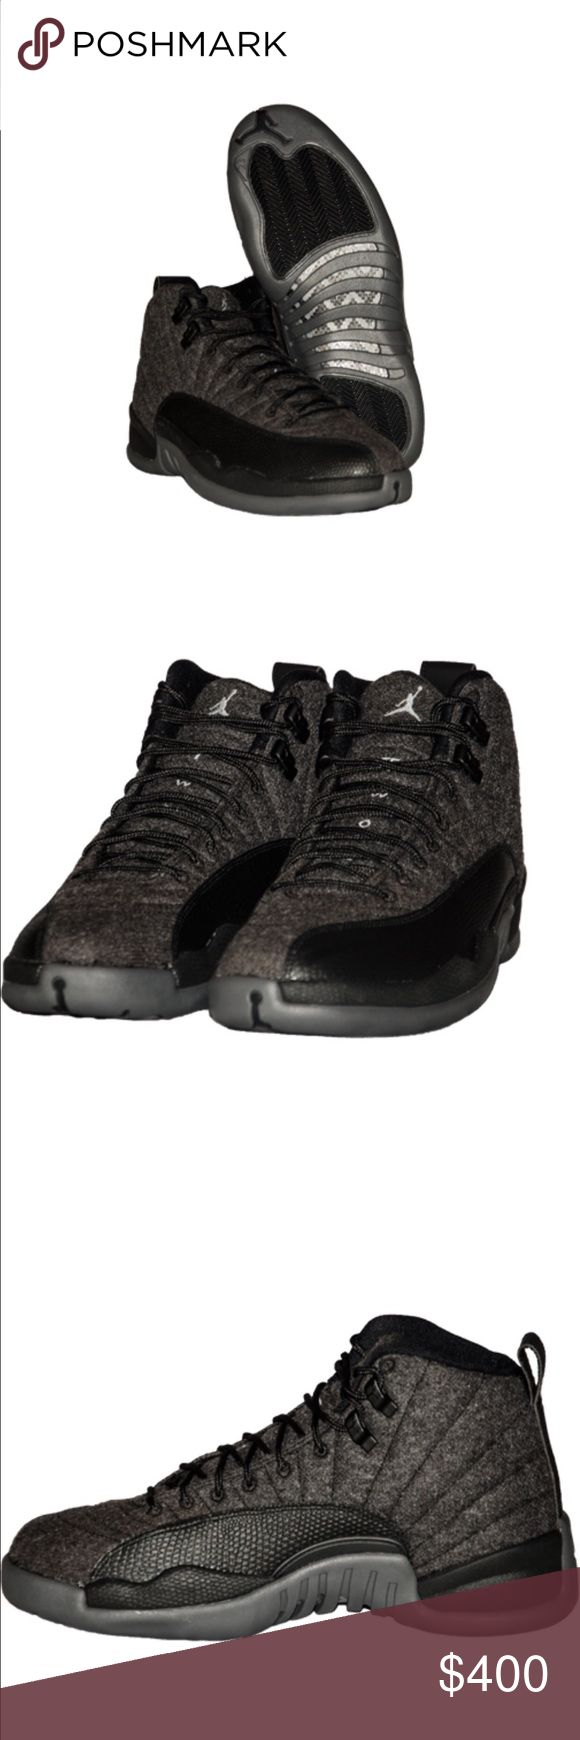 Air Jordan 12 Retro Wool Size 8.5 retro jordans brand new, never been worn before . 100% authentic Jordan Shoes Sneakers